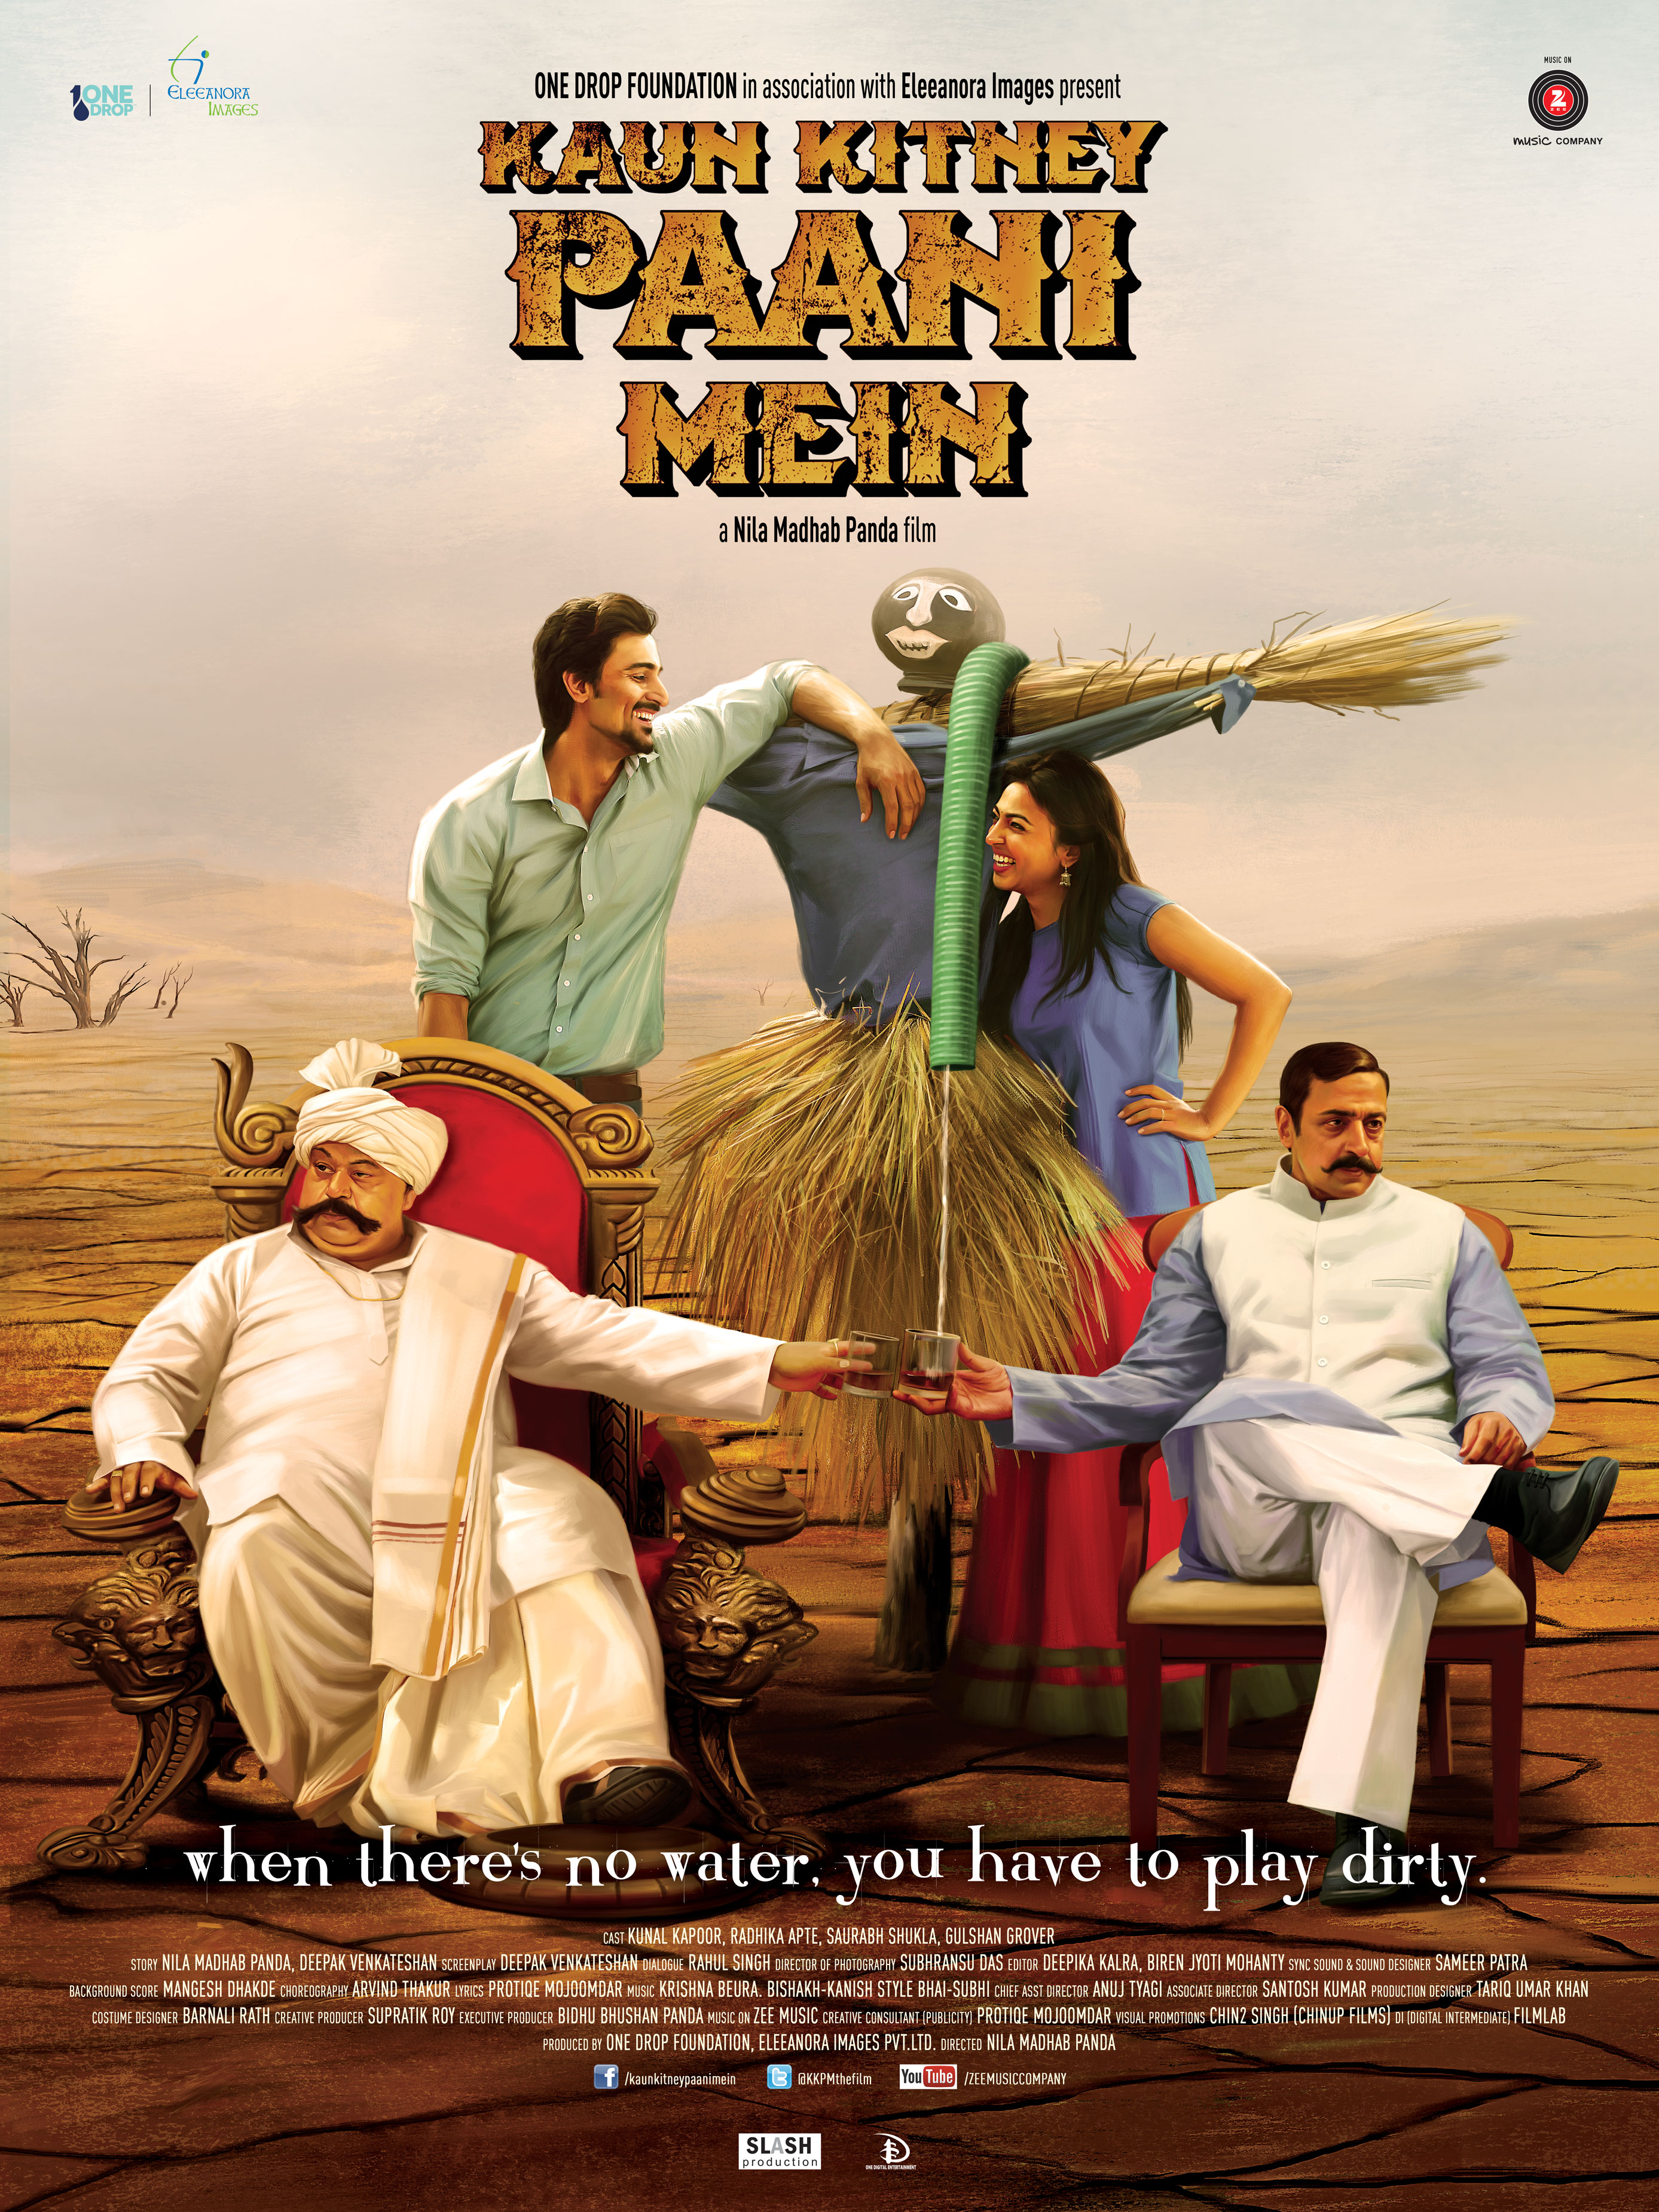 Hindi new movie picture video mein full hd download